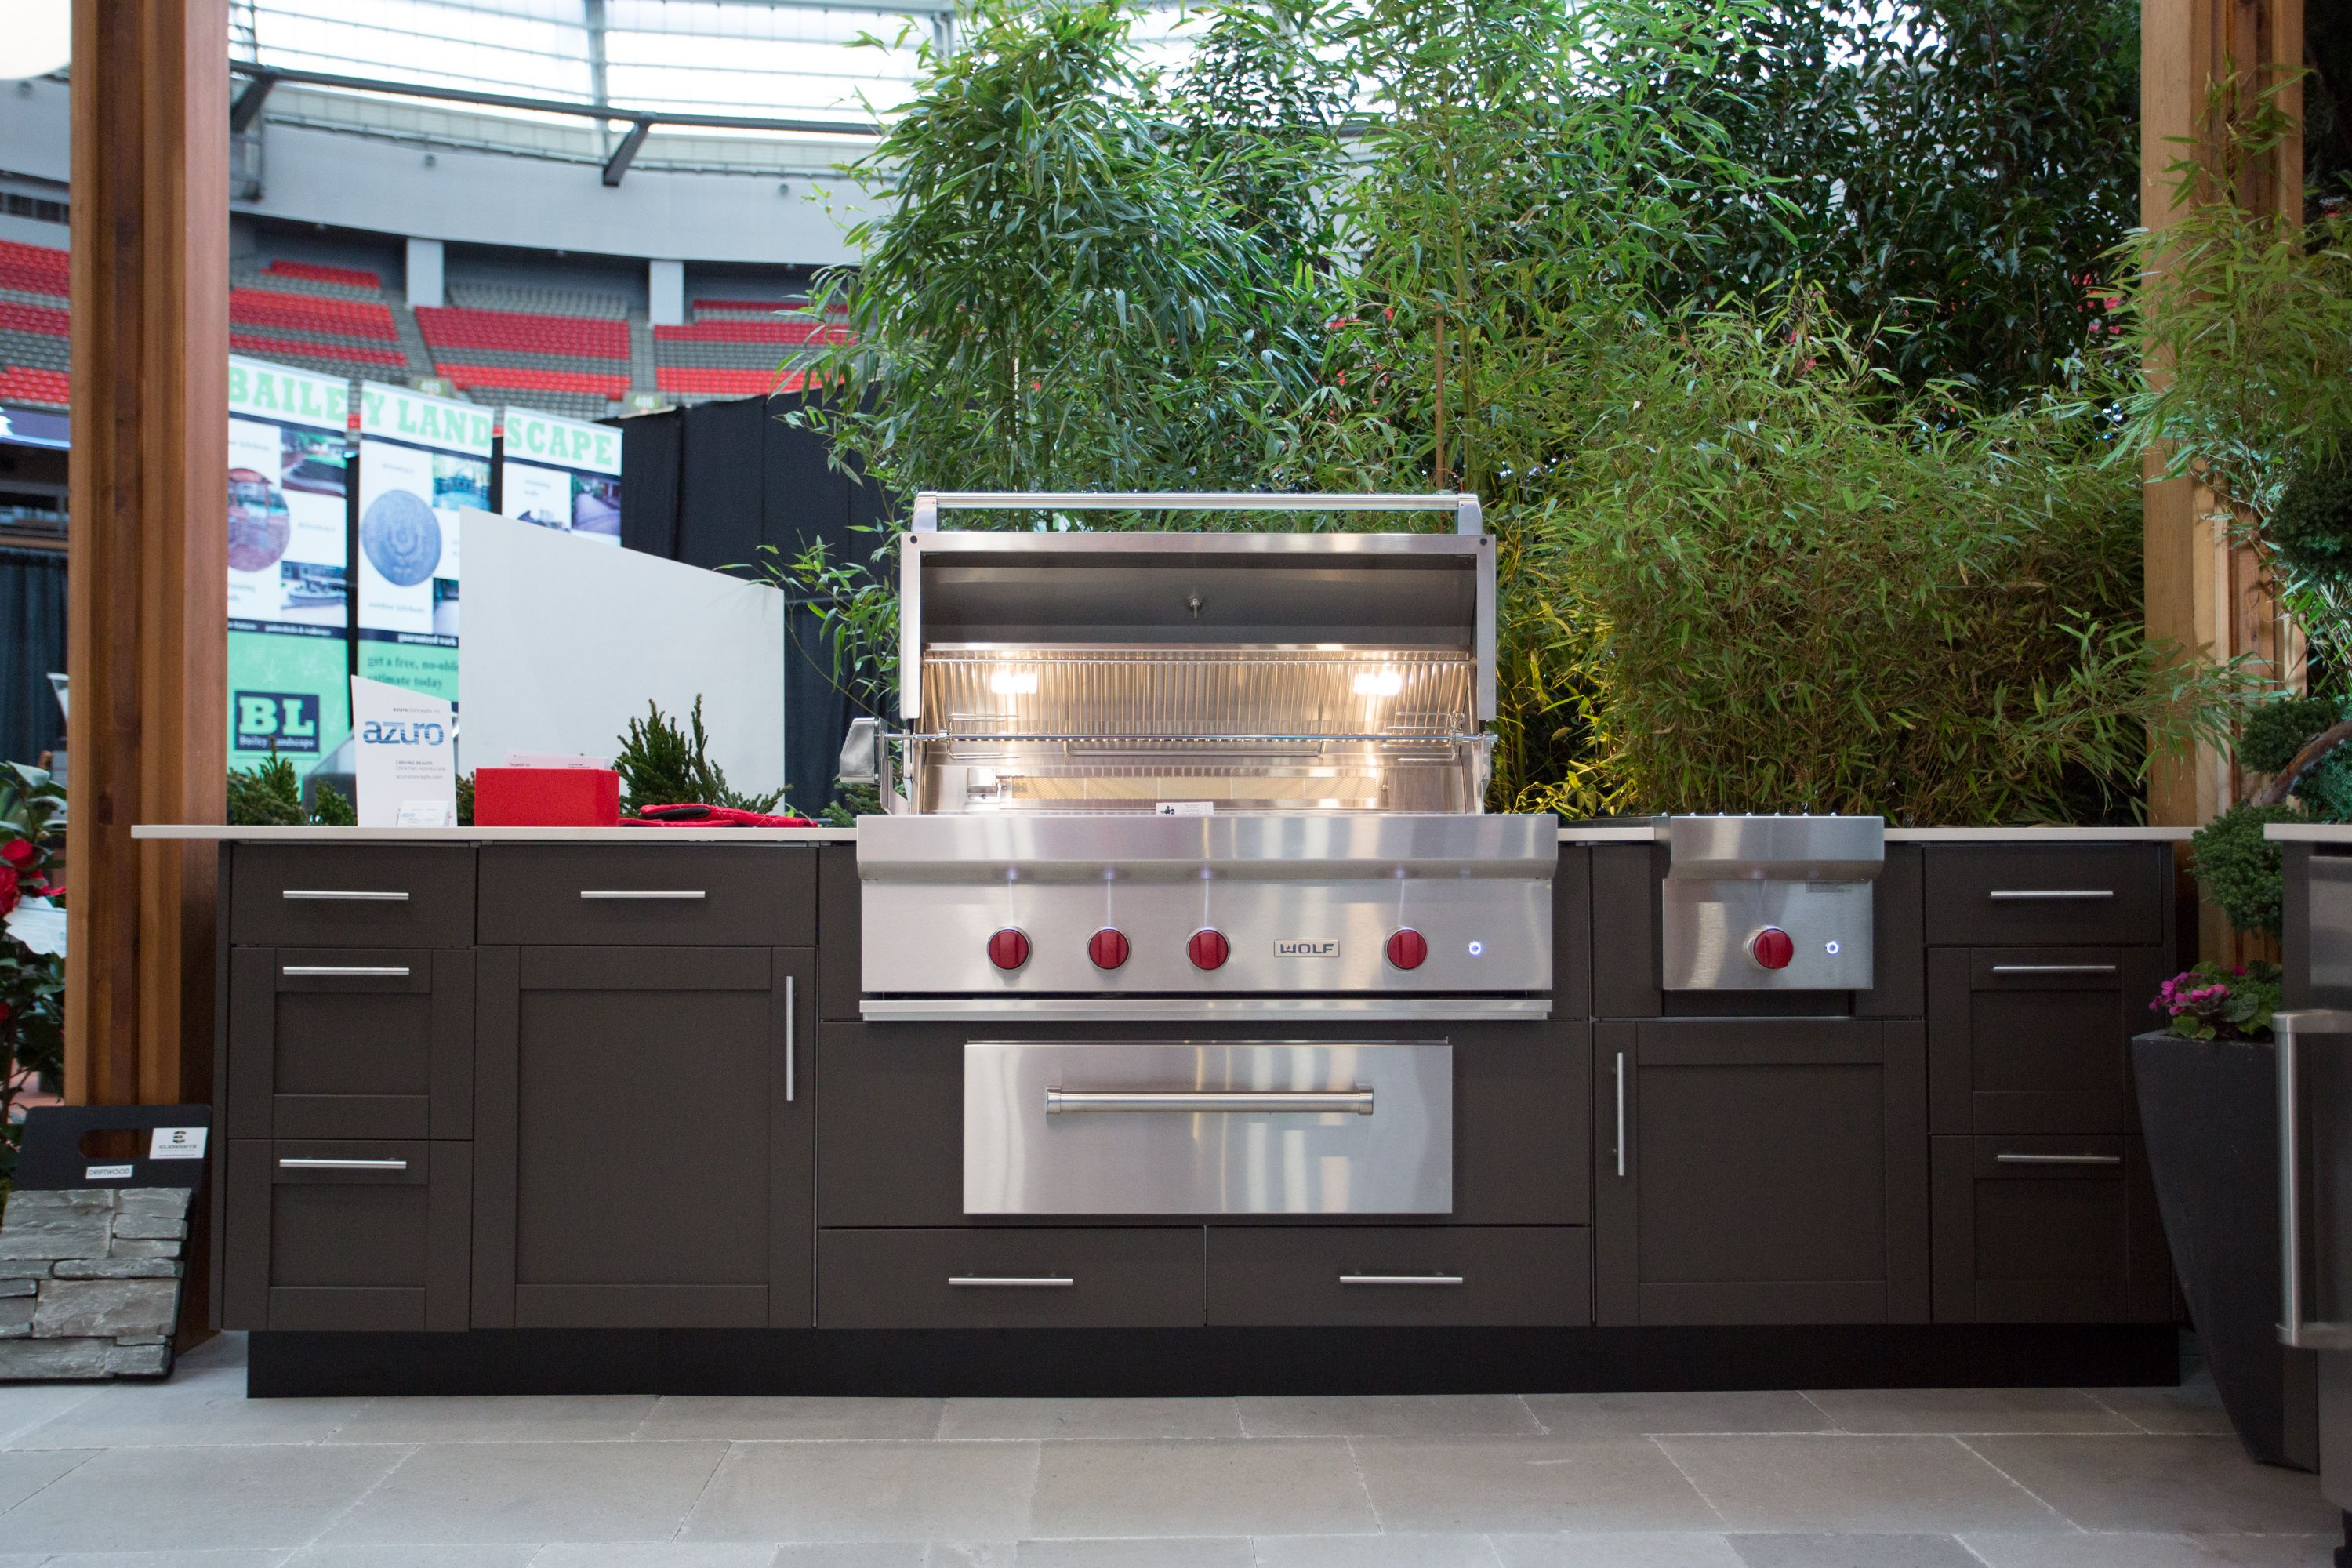 Pin By Danver Stainless Outdoor Kitch On Kitchen Envy Outdoor Kitchen Design Outdoor Kitchen Outdoor Kitchen Design Layout